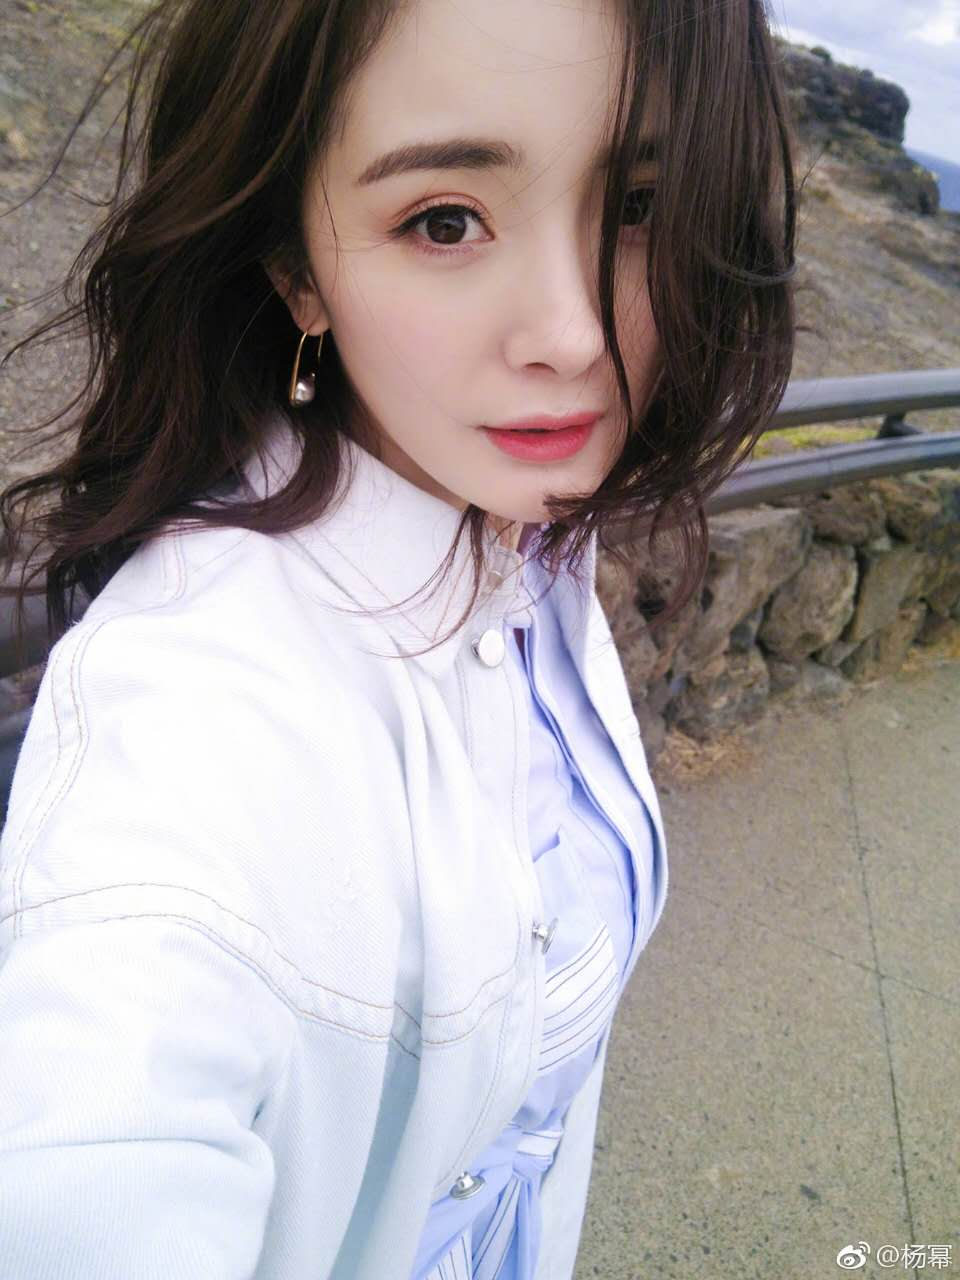 Yang Mi wearing the Hook and Ball Earring